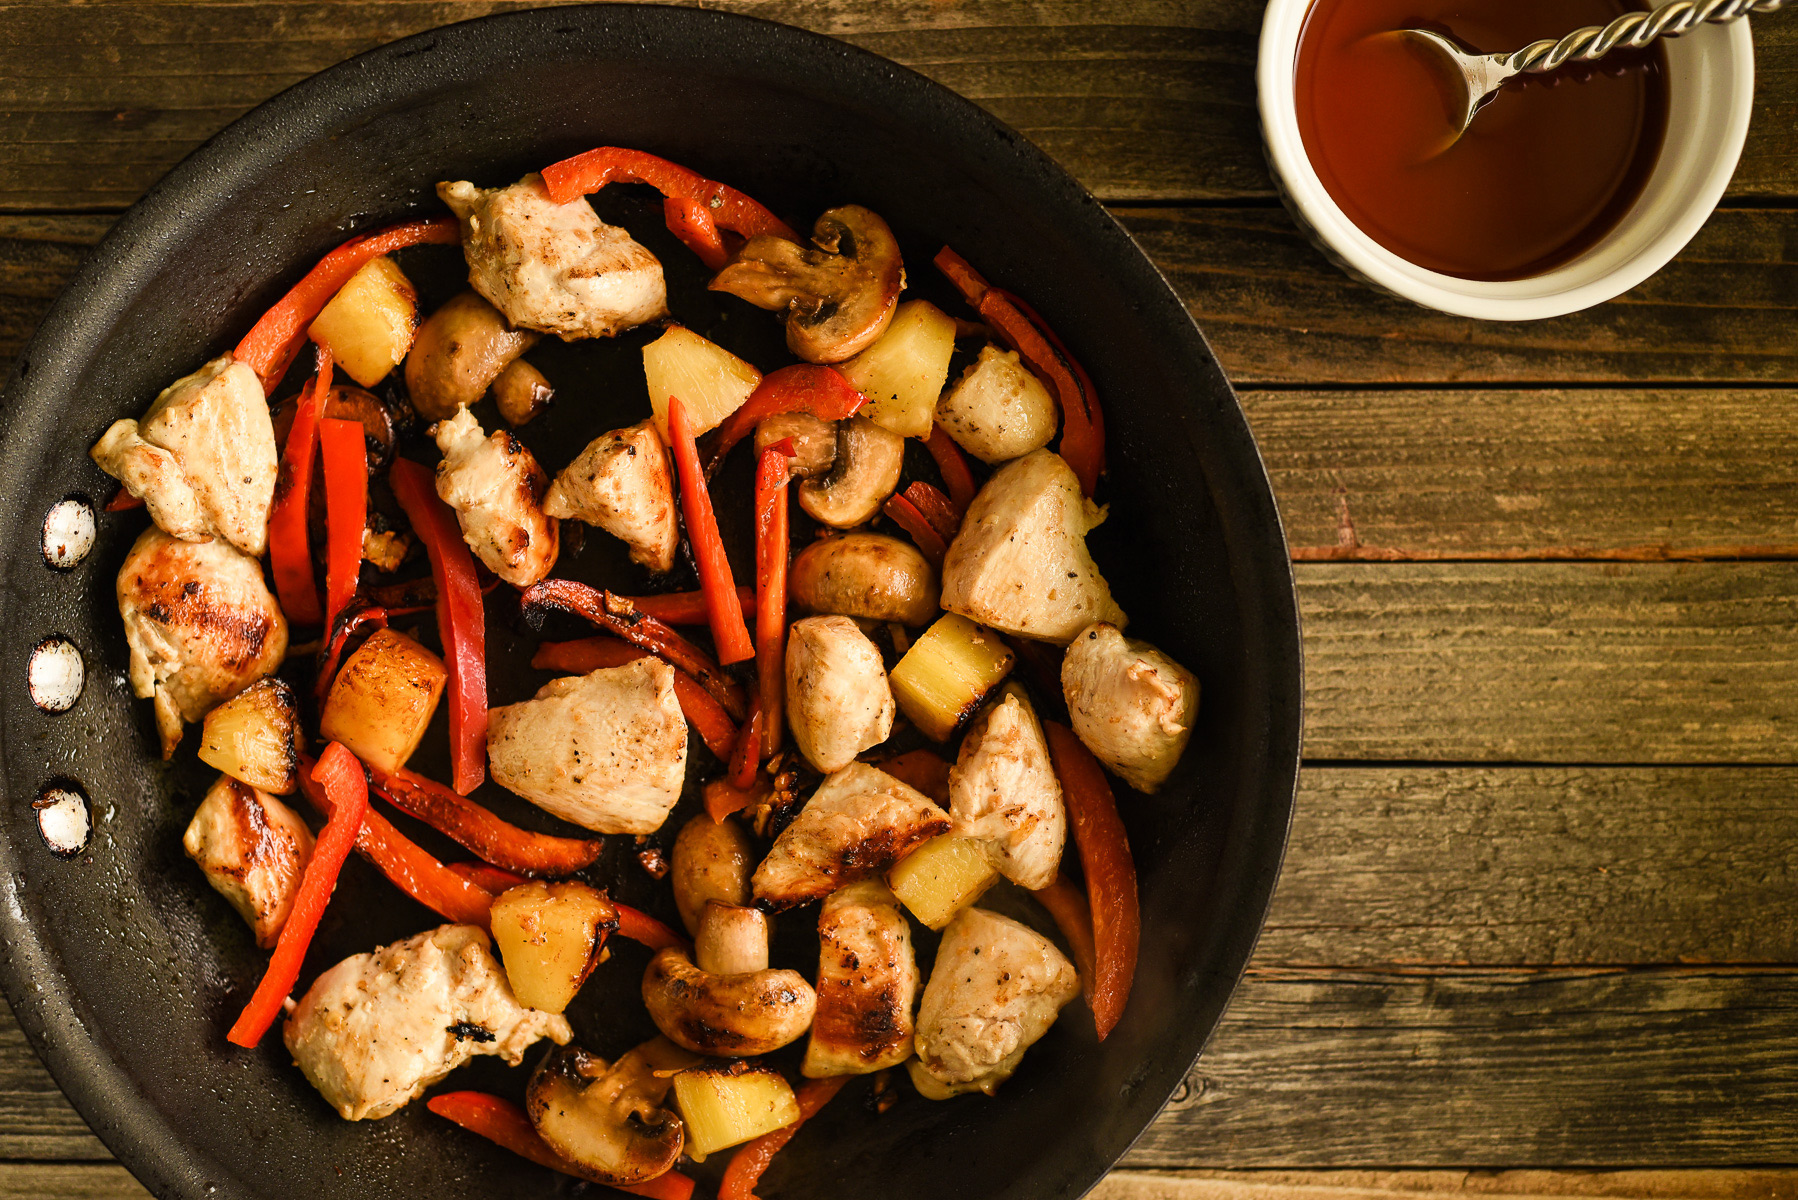 Chopped chicken, pepper, mushroom and pineapple, stir-fried in a skillet